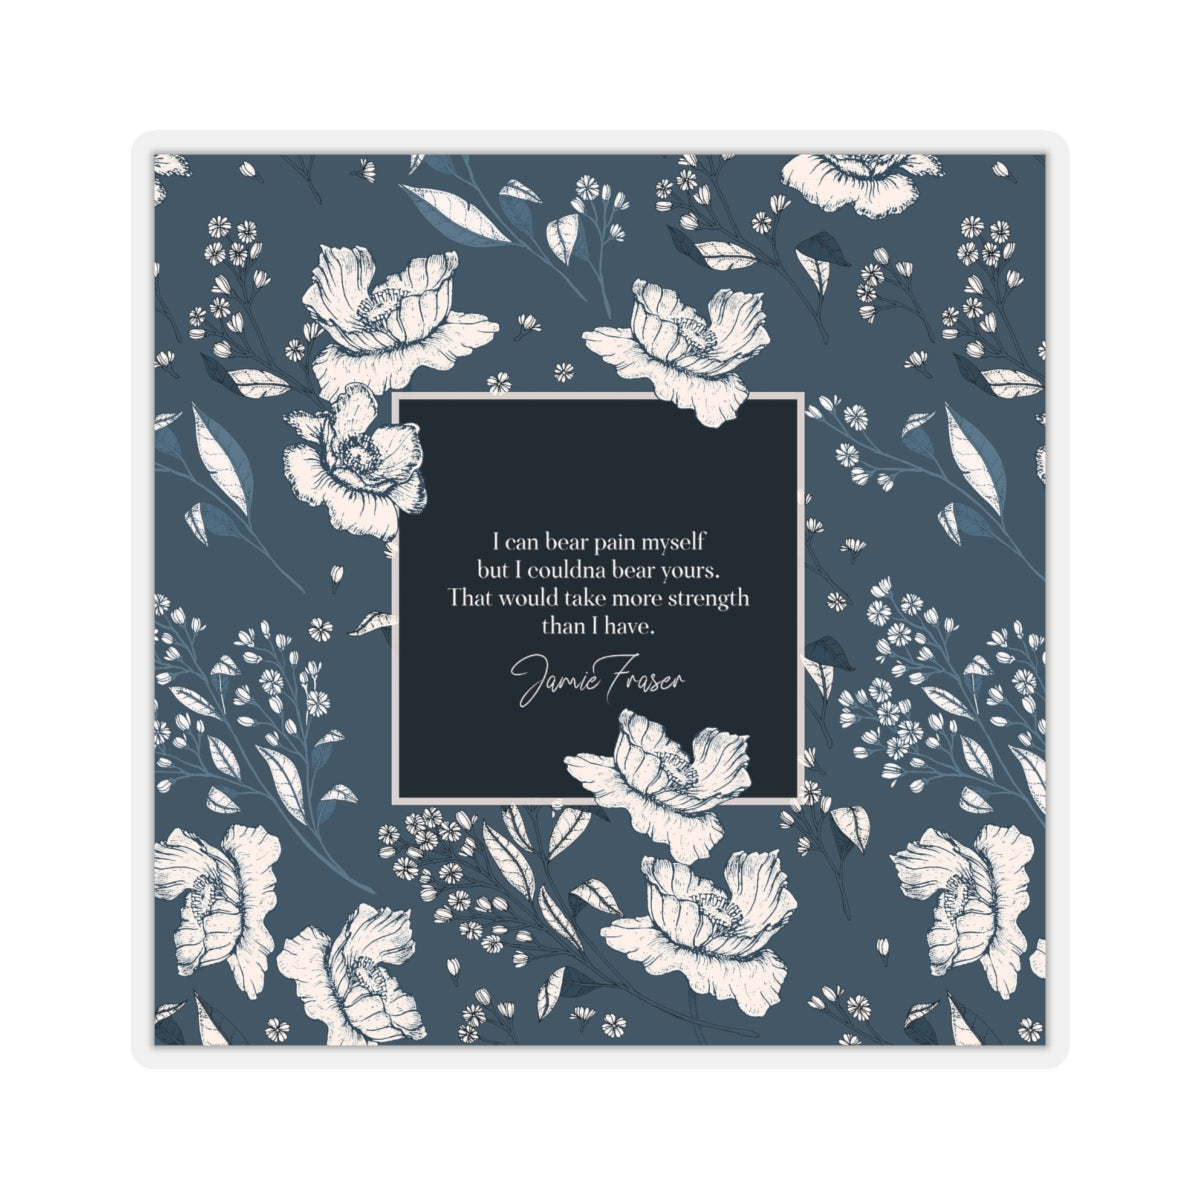 I can bear pain myself... Jamie Fraser Quote Sticker - LitLifeCo.